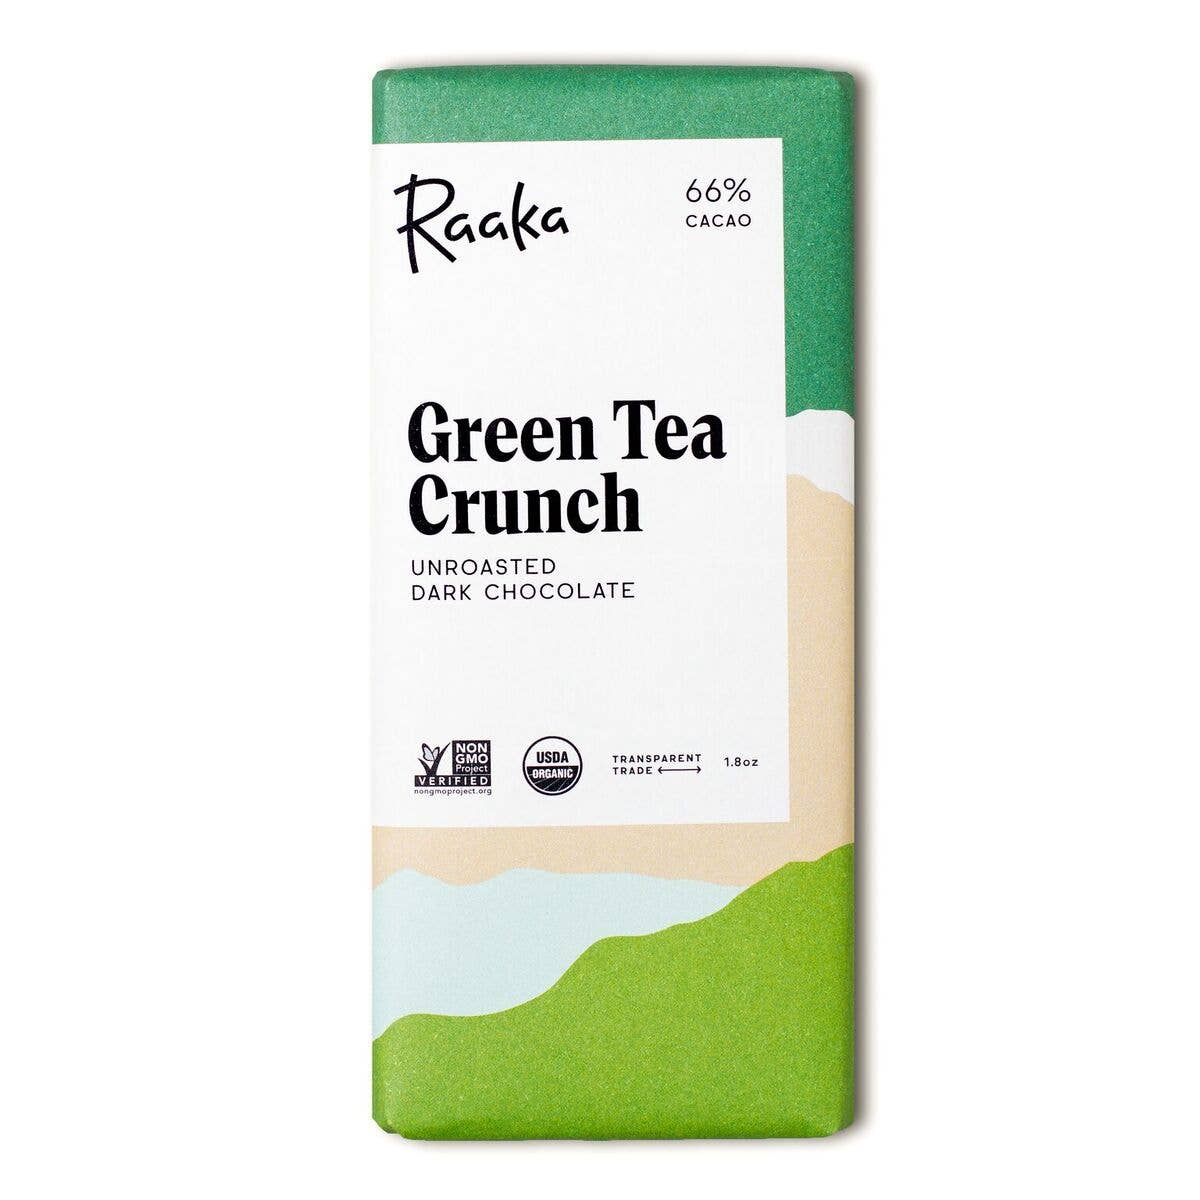 66% Green Tea Crunch